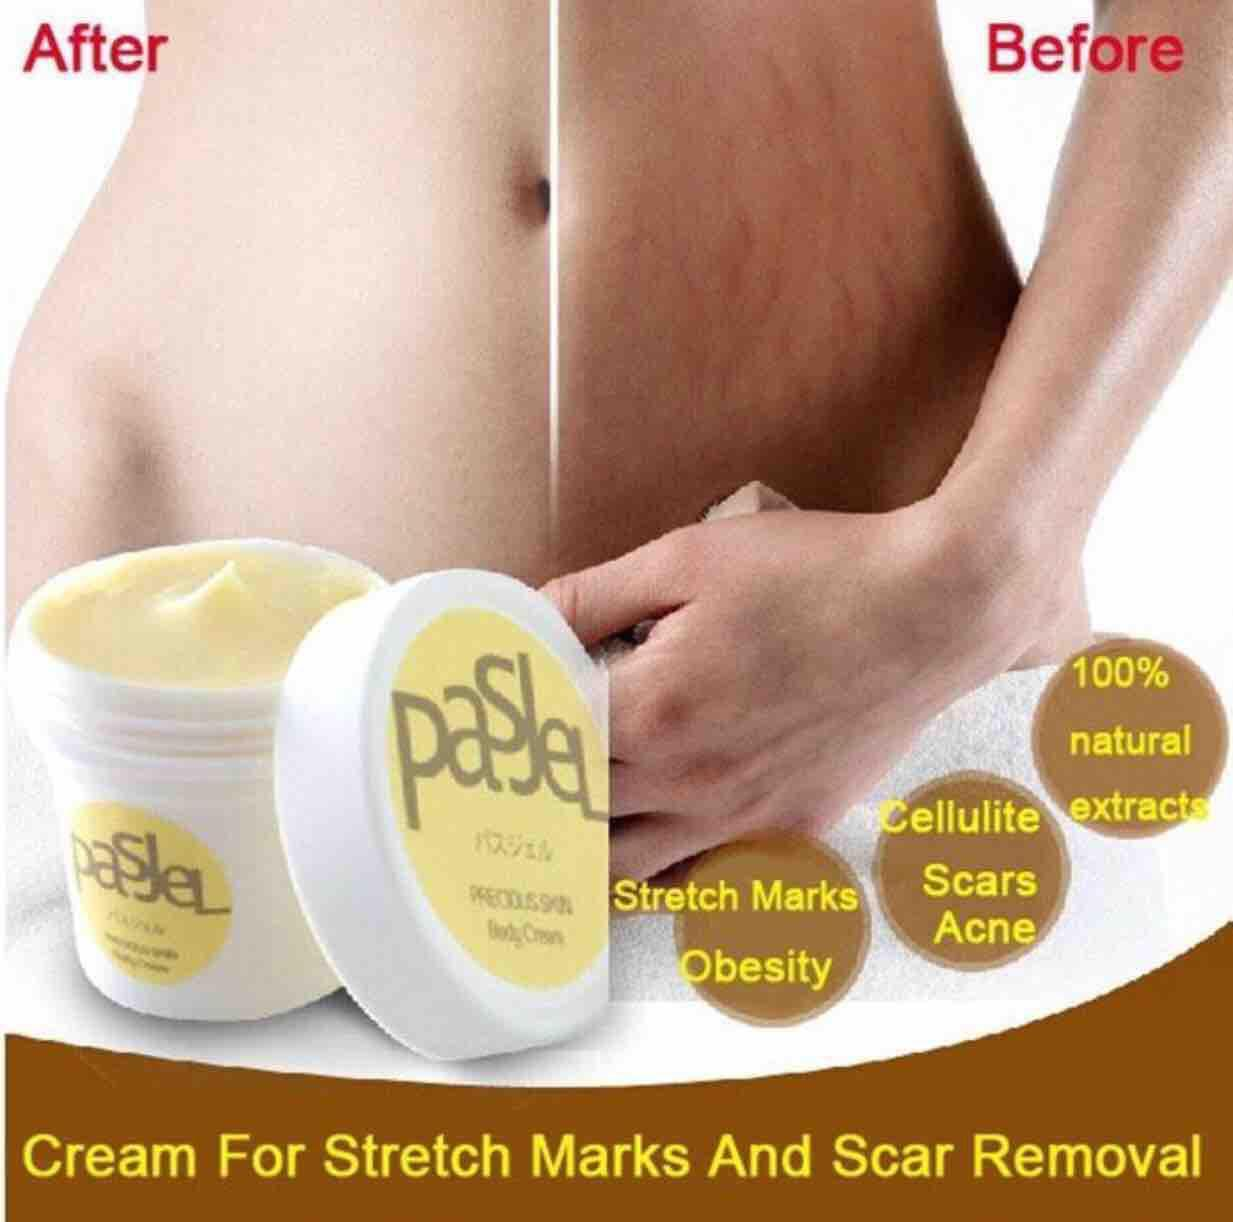 Scar Remover Brands Scar Creams On Sale Deals And Promos Online